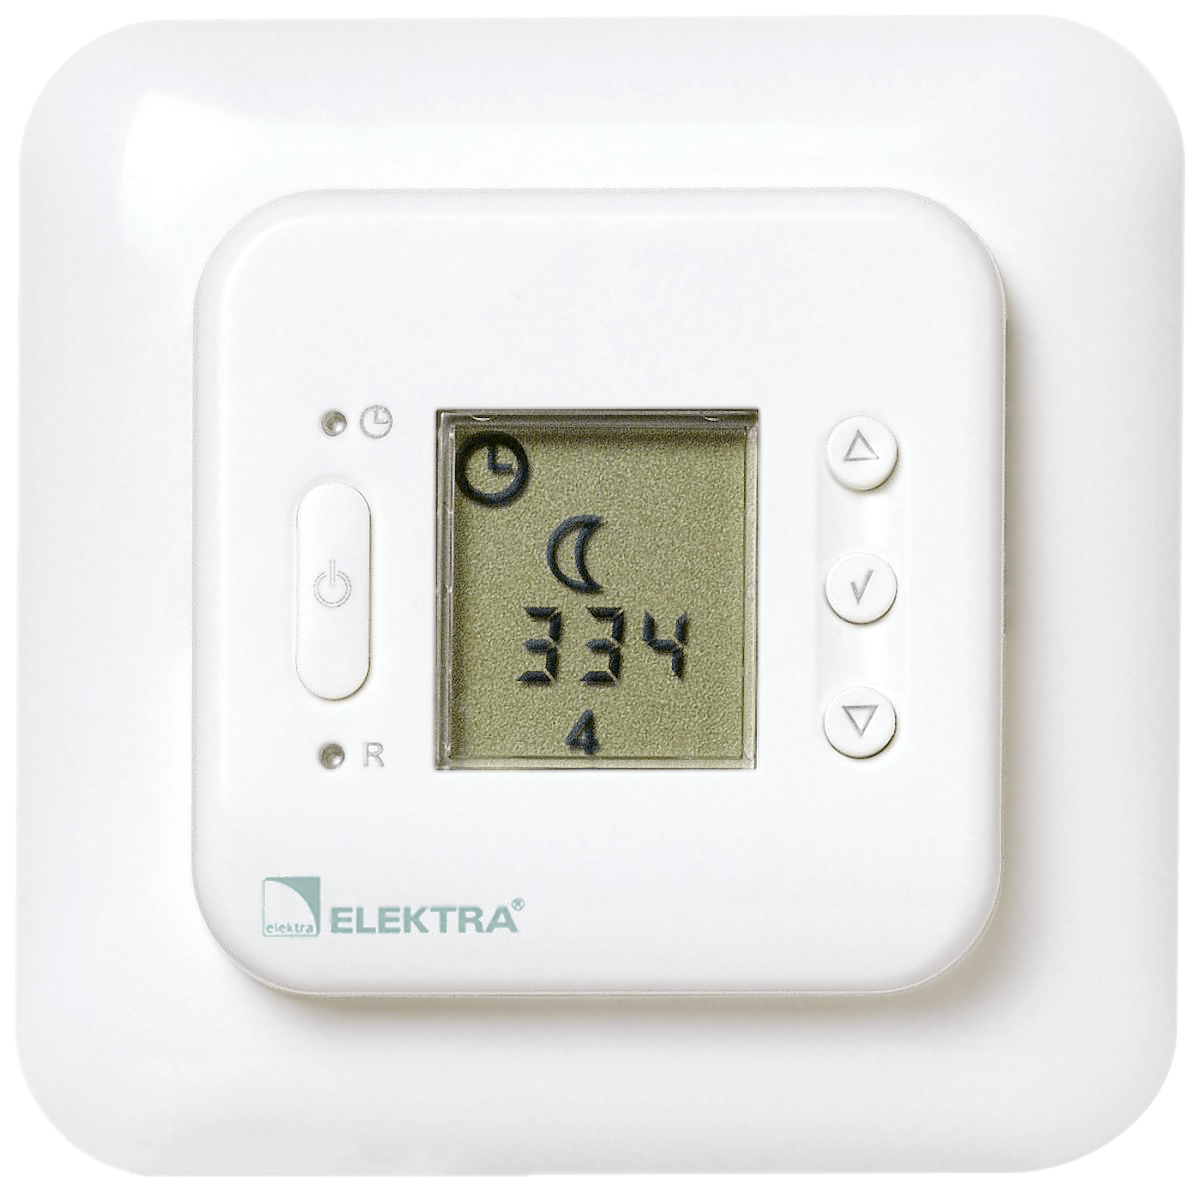 ELEKTRA OCD2 1999 Thermostat - Programmable Heat Controller